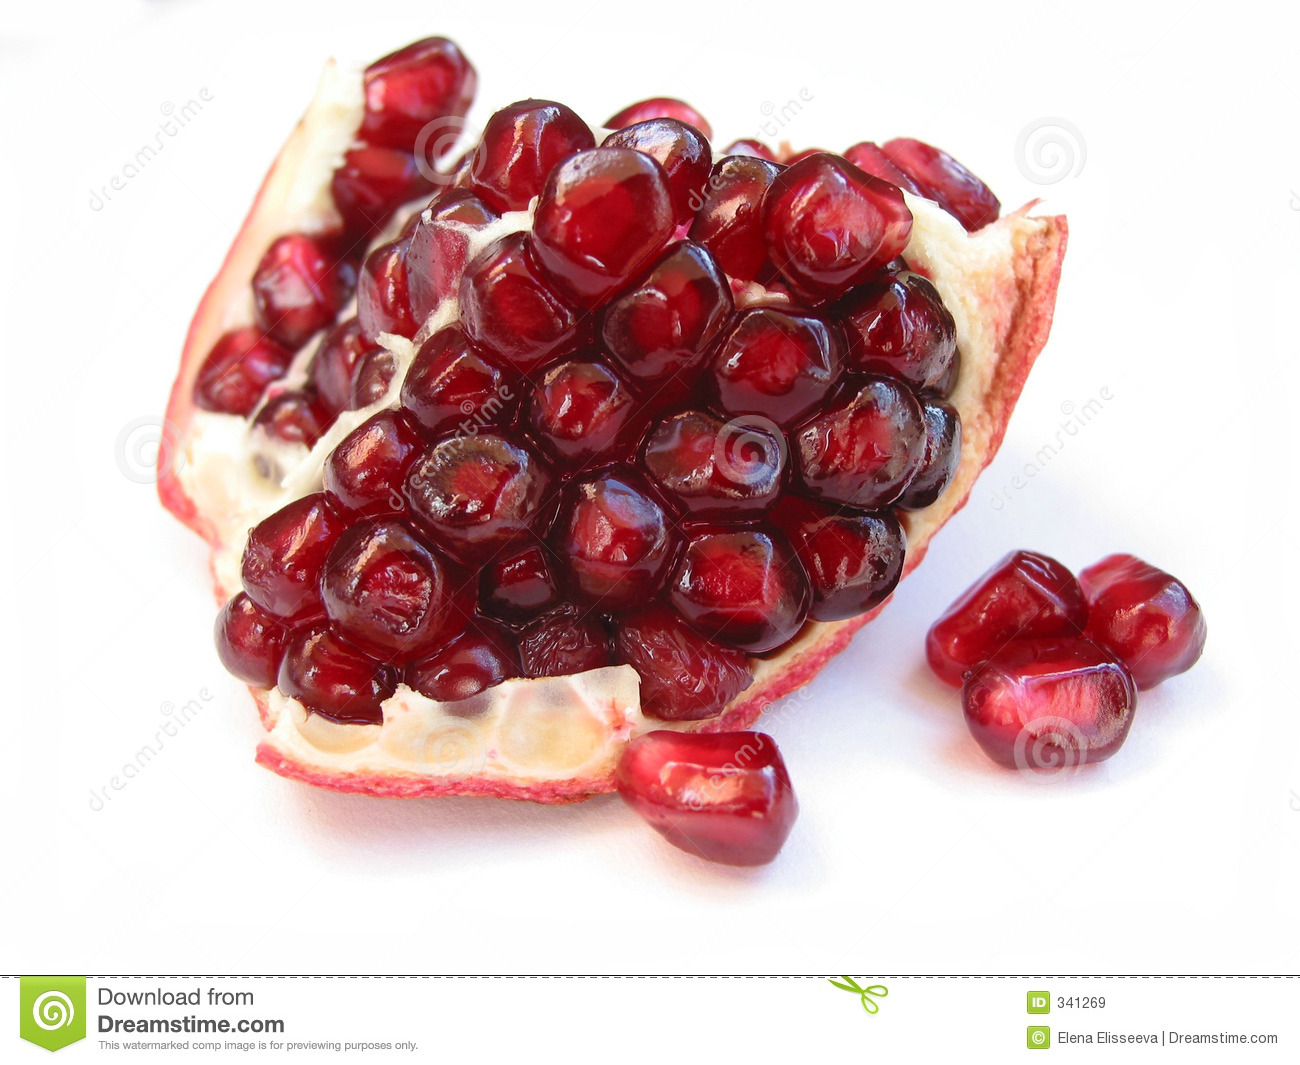 Pomegranate seeds on white